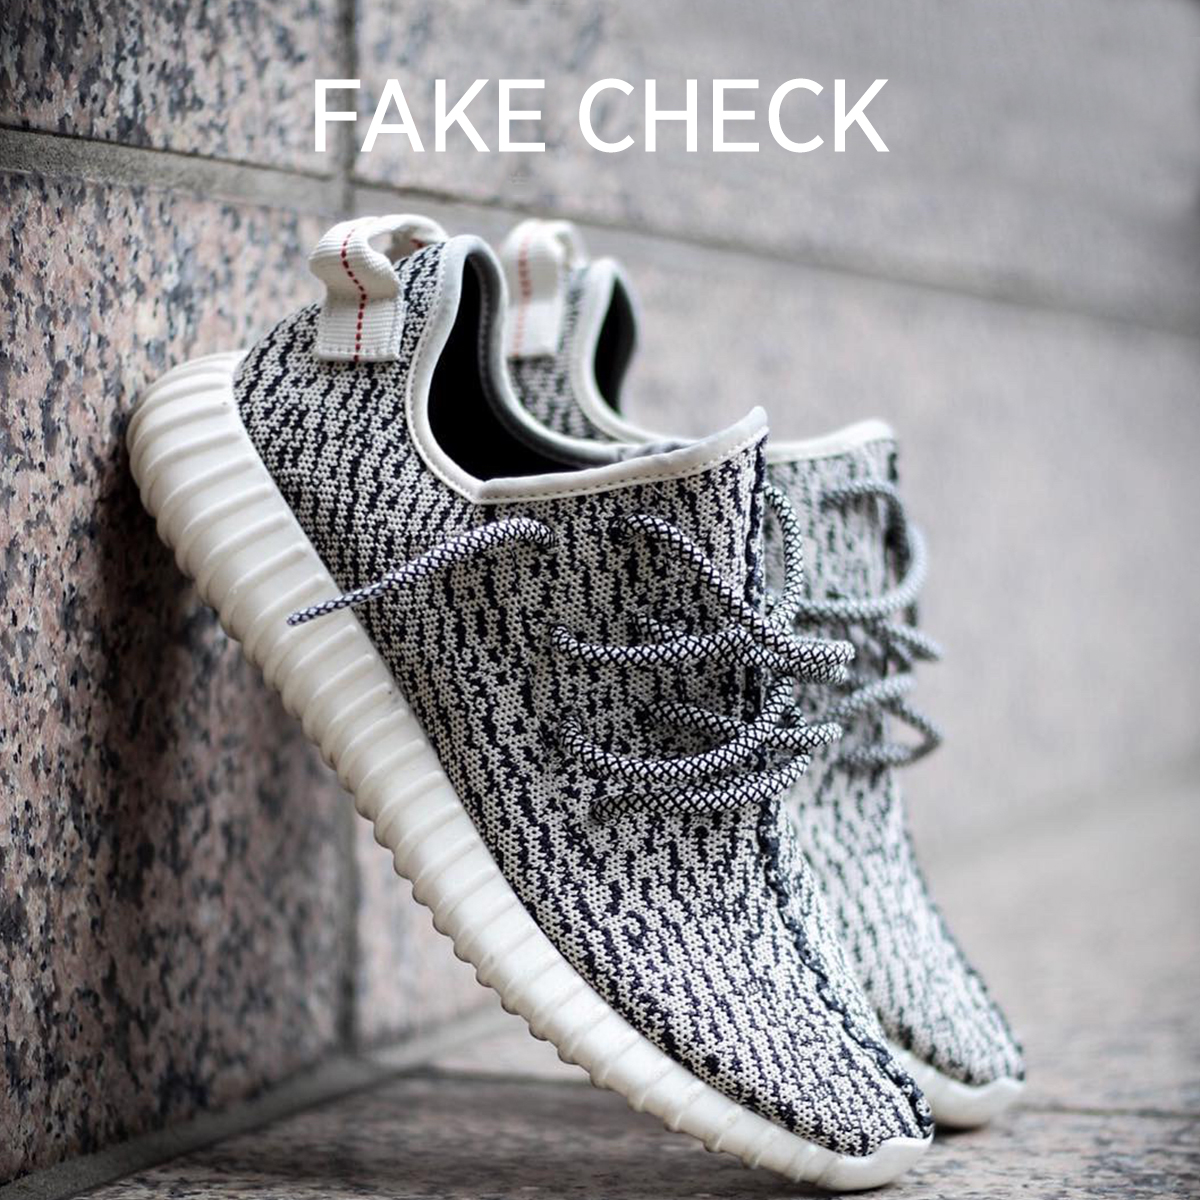 Adidas Originals Yeezy Boost 350 Turtle Dove Fake Check Klekt